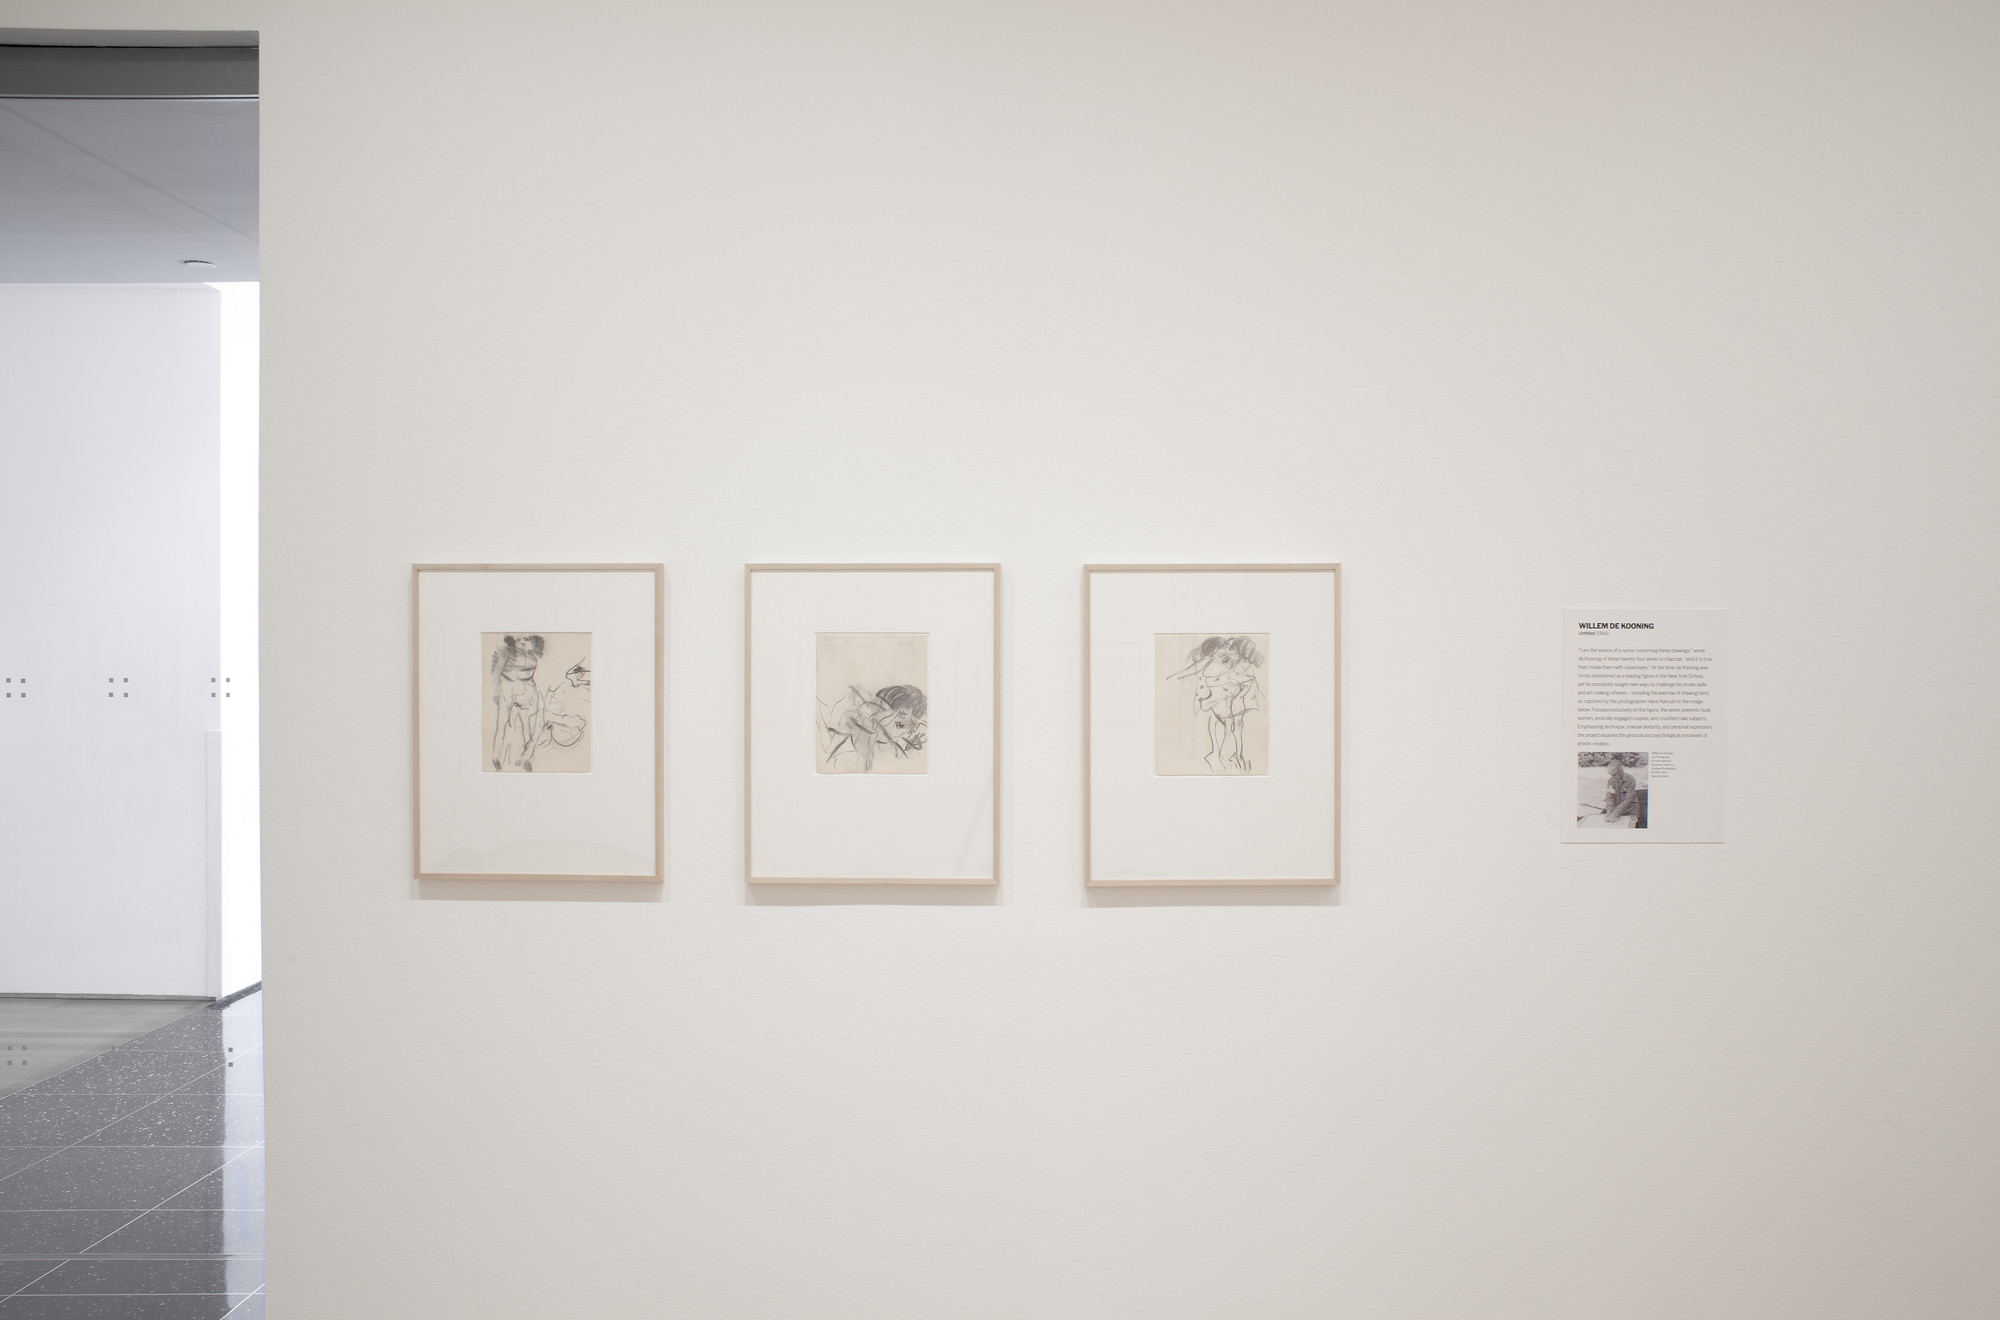 Installation view of the exhibition eyes closed eyes open recent acquisitions in drawings moma